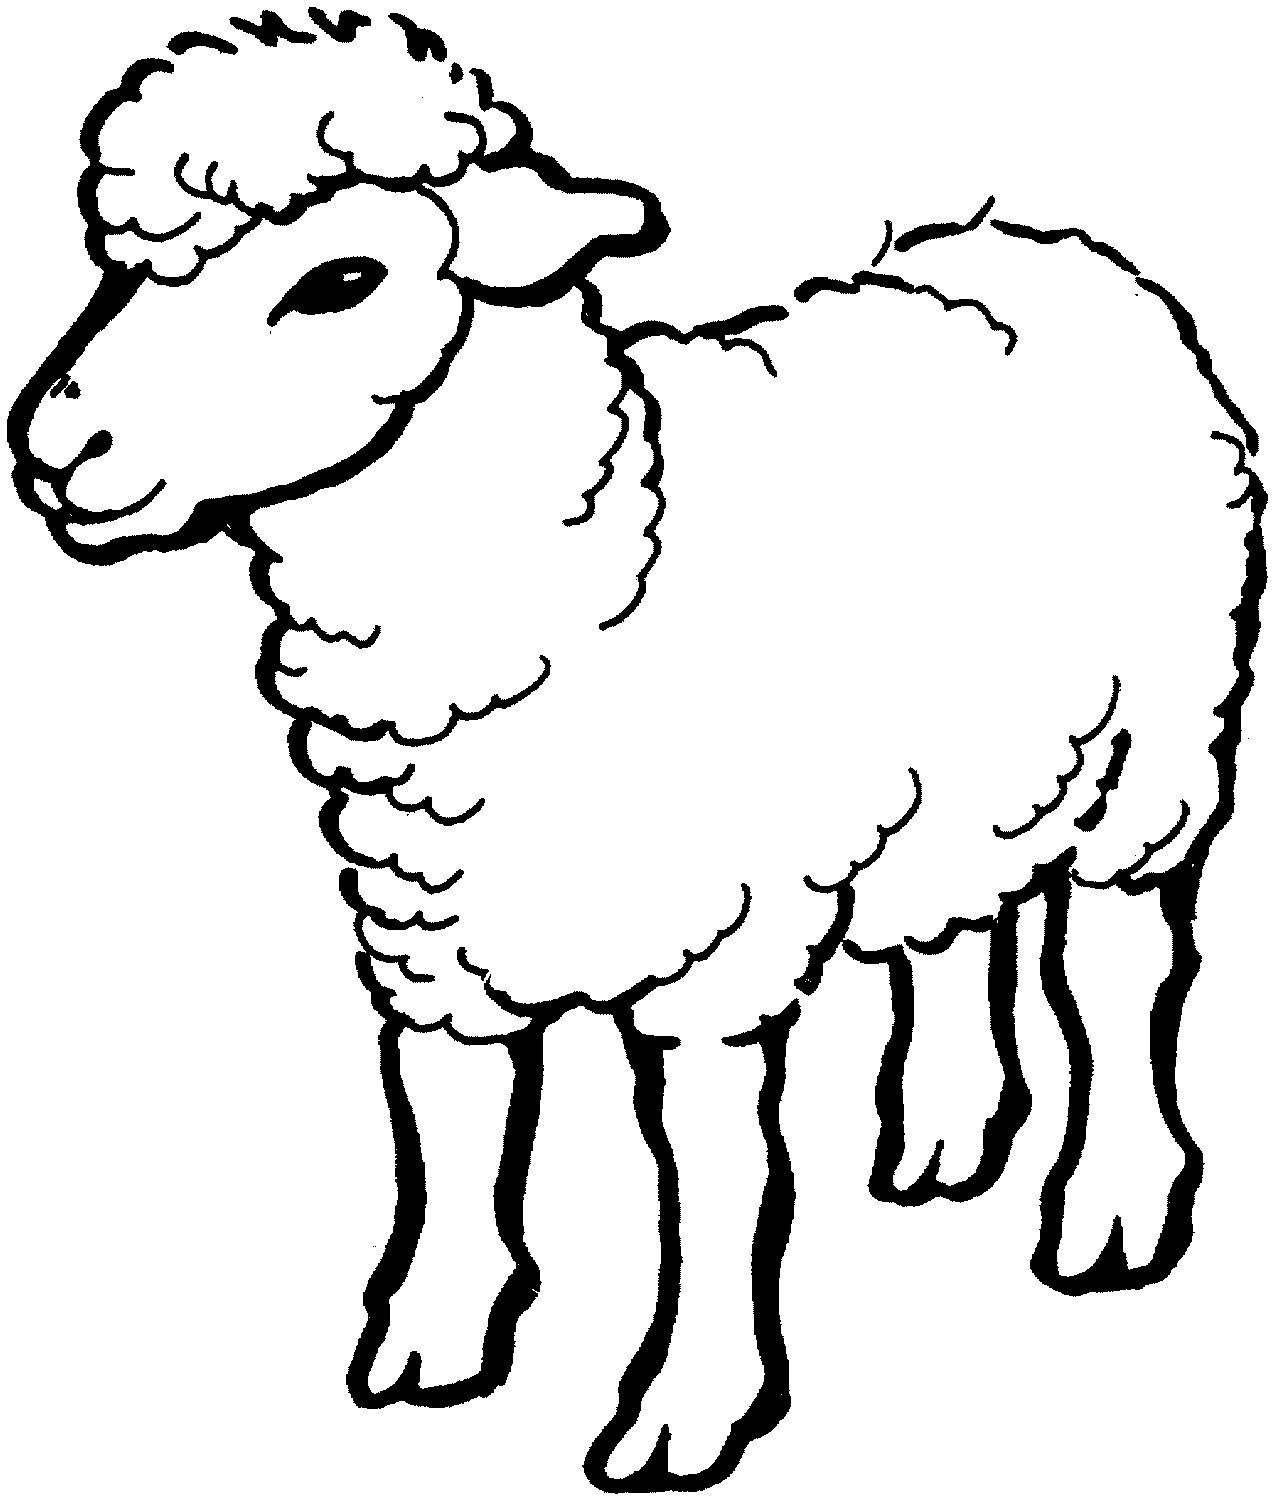 2 Farm Animals Drawing For Kids Sheep Coloring Page Farm Animals